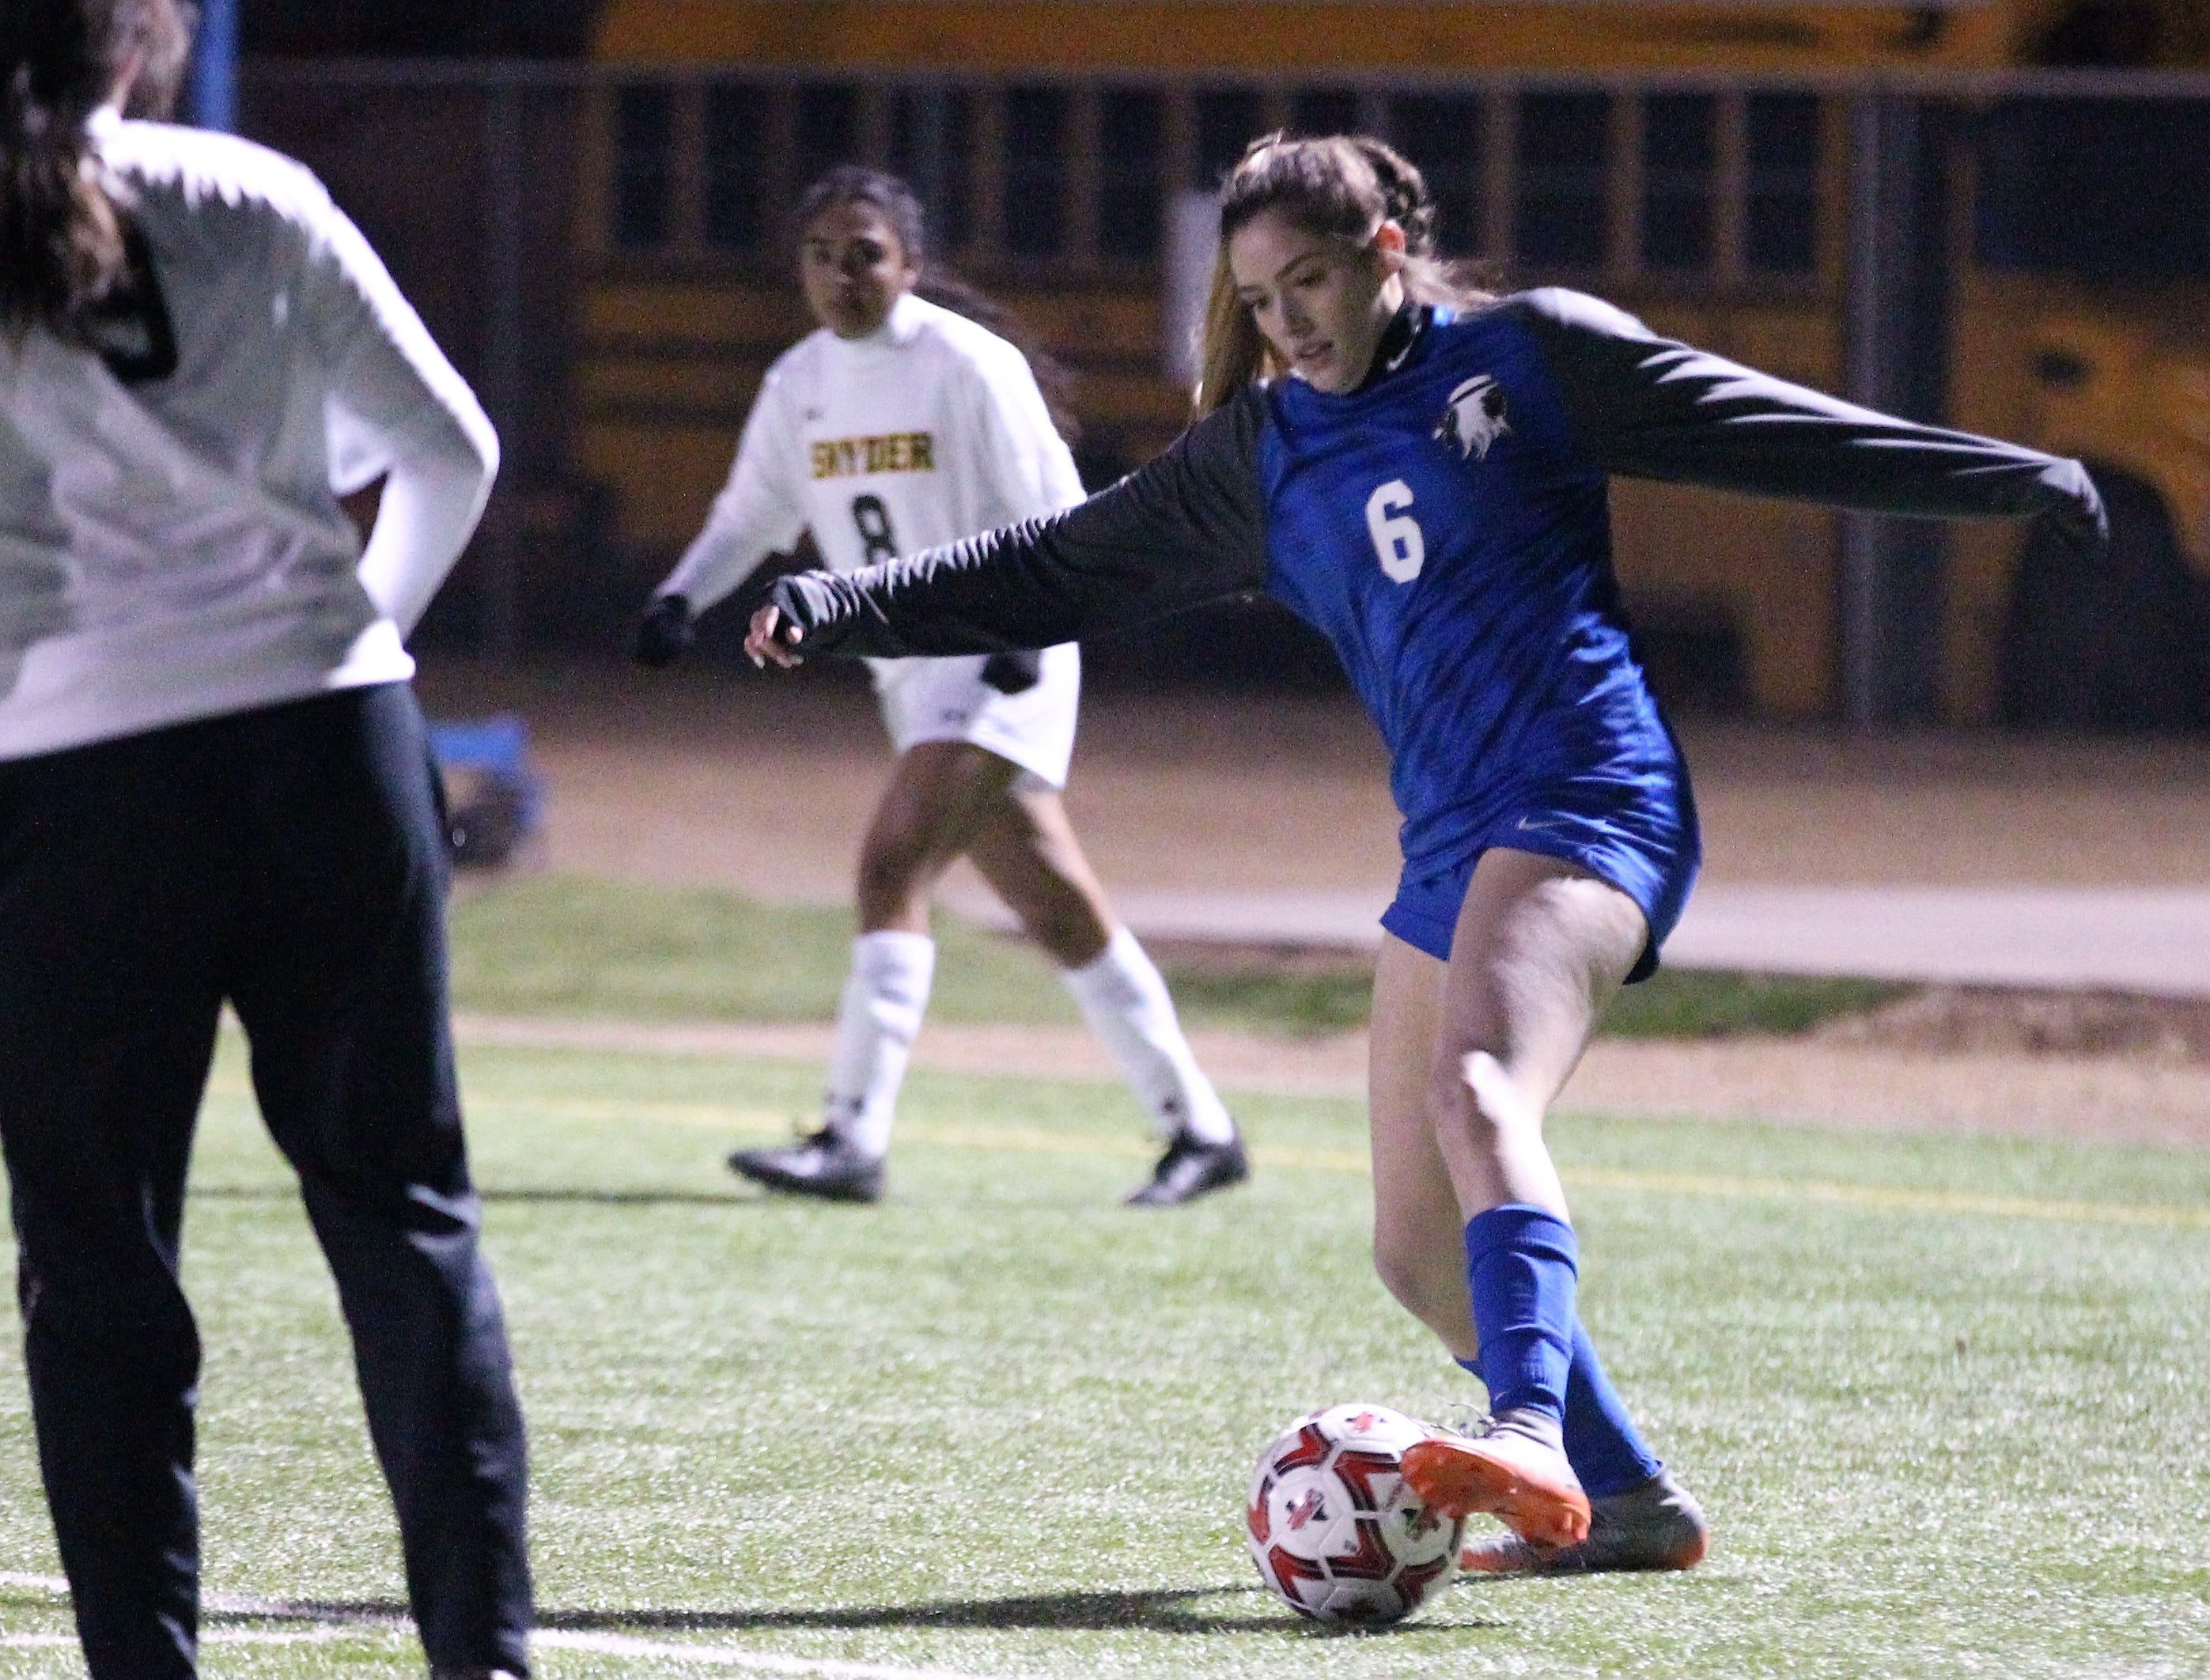 Lake View's Shae Gonzales works the ball in a District 4-4A soccer match against Snyder at Old Bobcat Stadium on Tuesday, March 5, 2019. The Maidens won 8-0 to secure the district title.